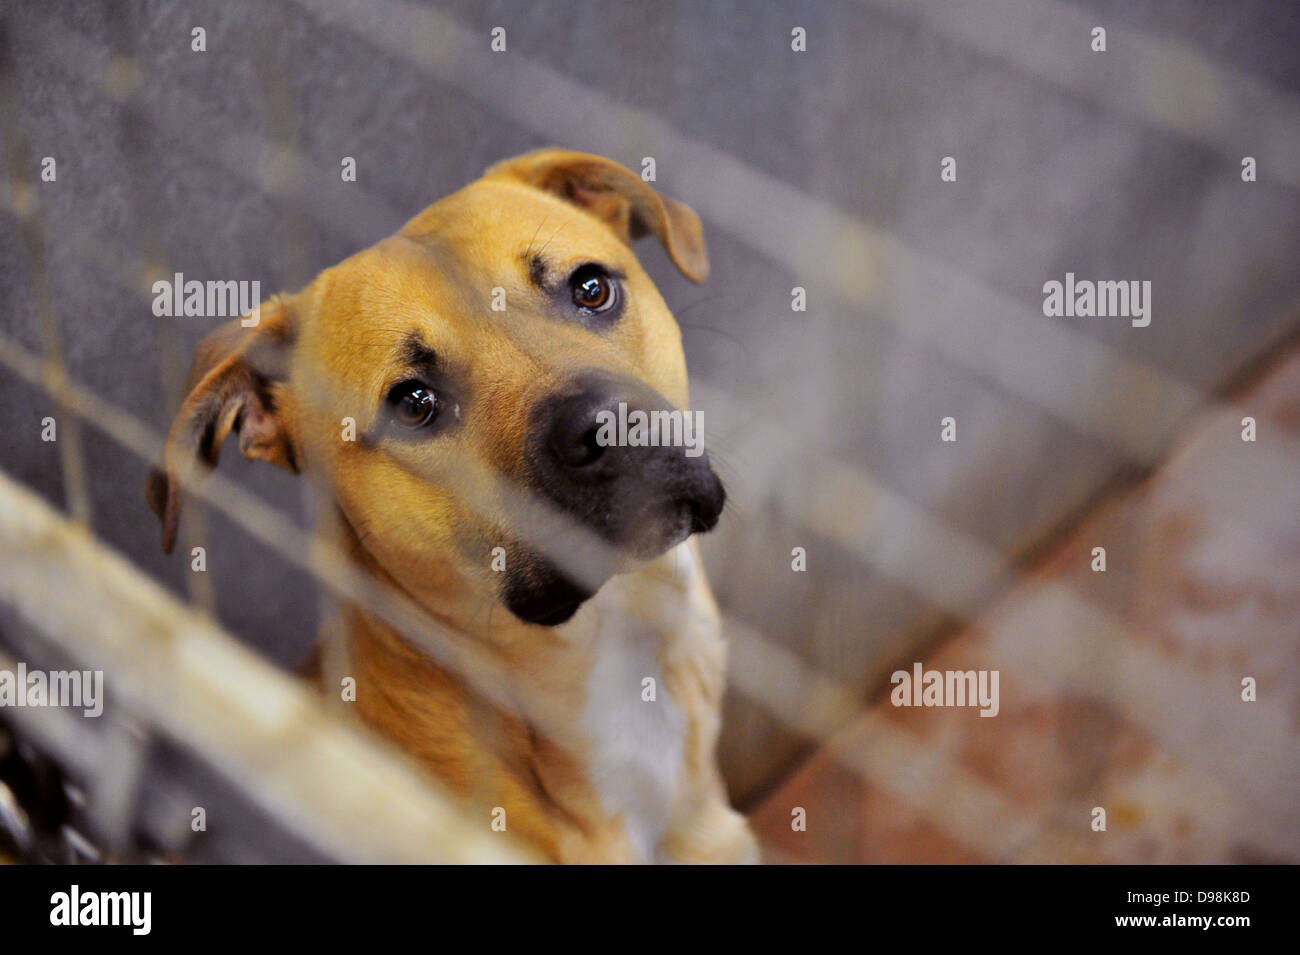 A dog at Cardiff Dogs Home, who faced overcrowding after Christmas. - Stock Image